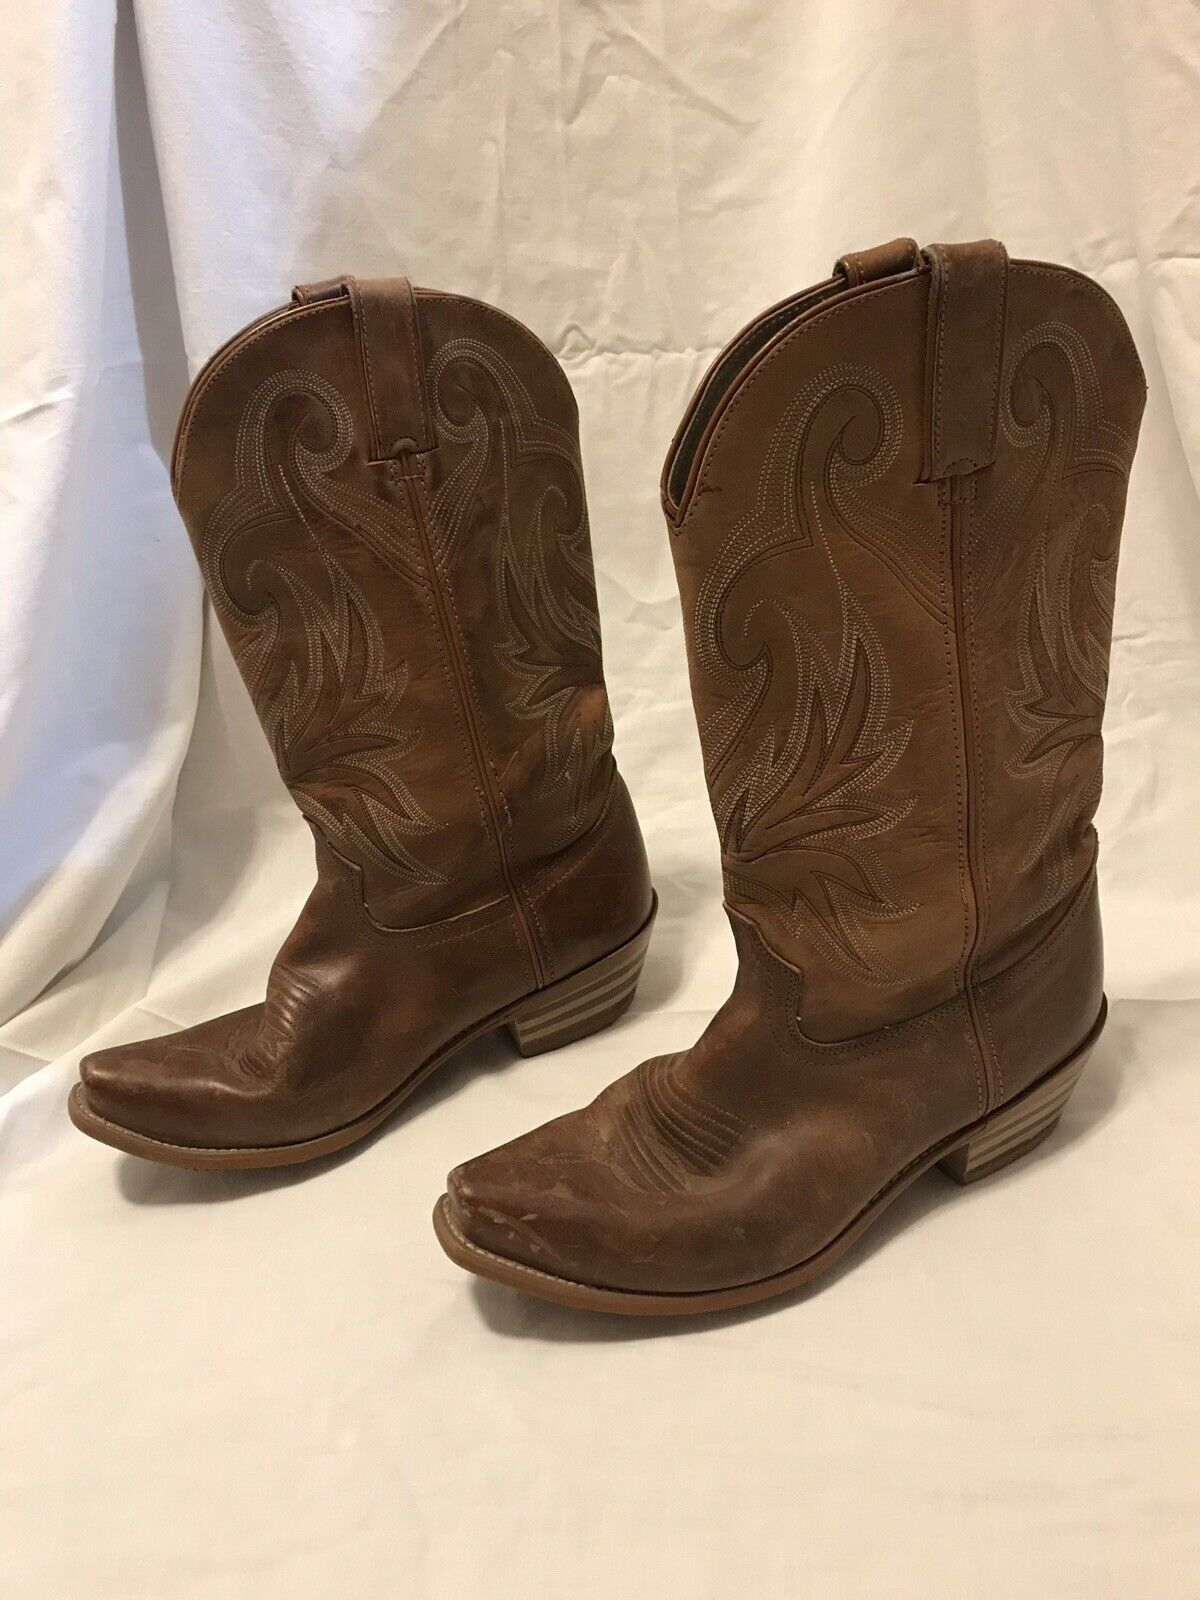 Durango Brown Leather Lady Snip Toe Cowgirl Cowboy Western Boots 9M RD4402